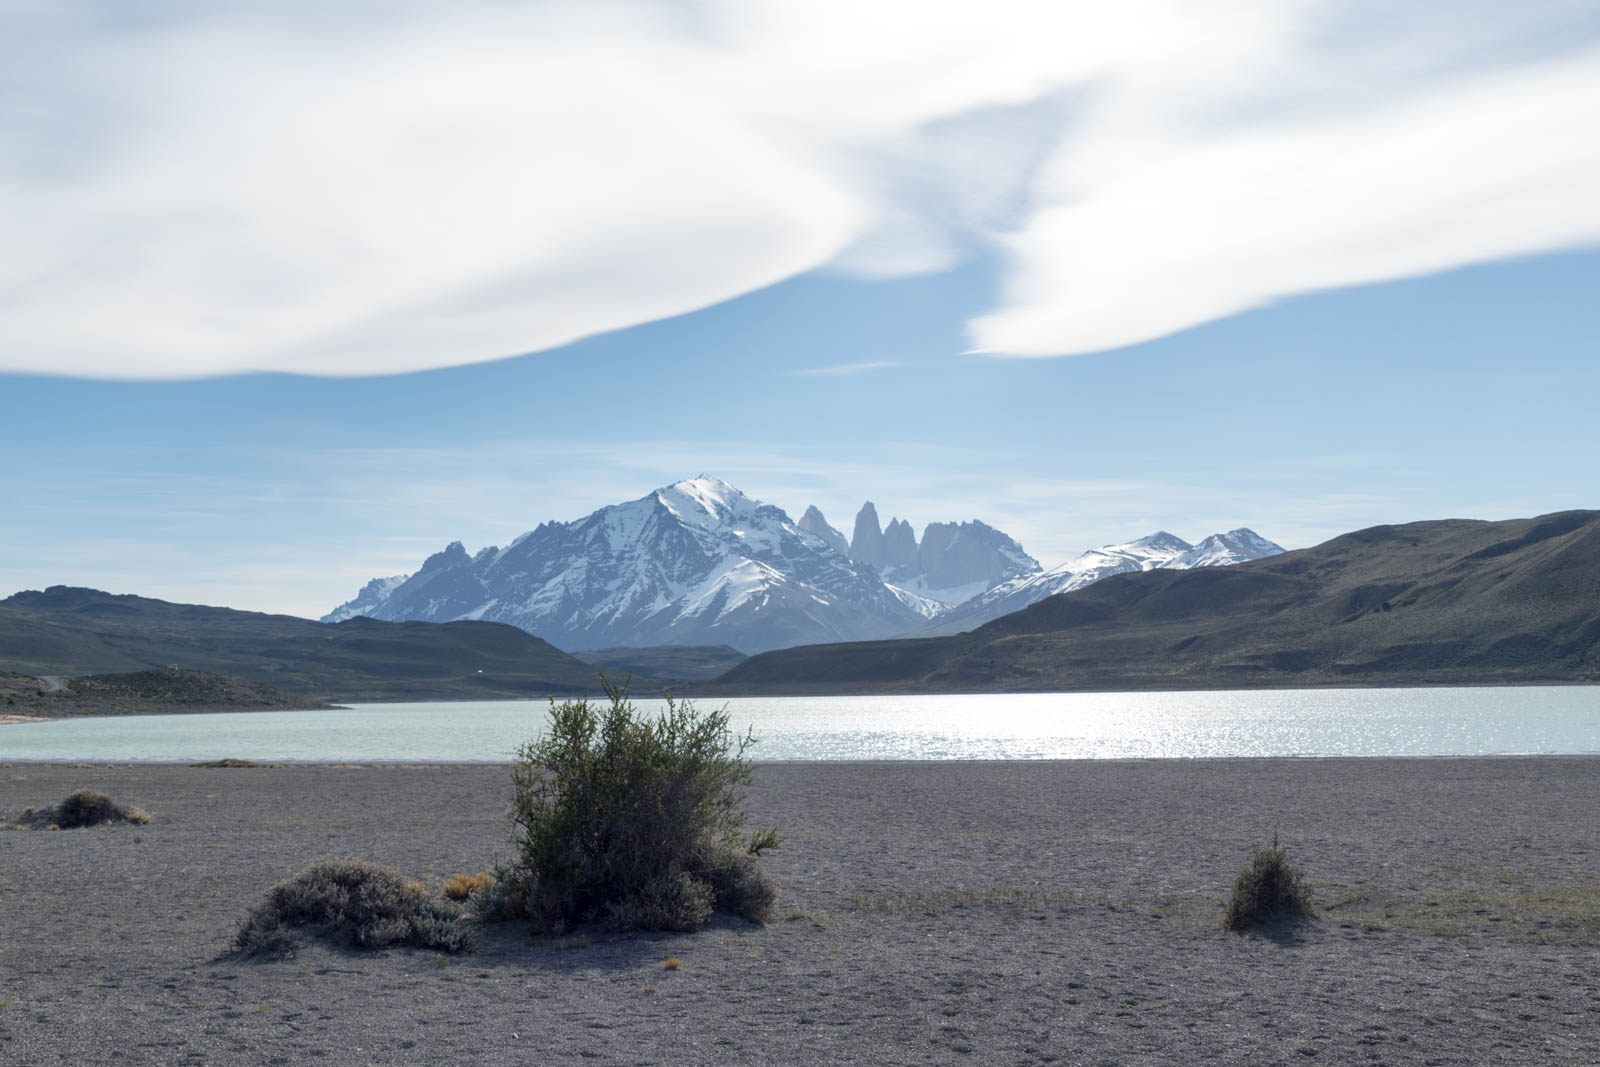 View of Torres del Paine with a lenticular cloud overhead from Lake Sarmiento